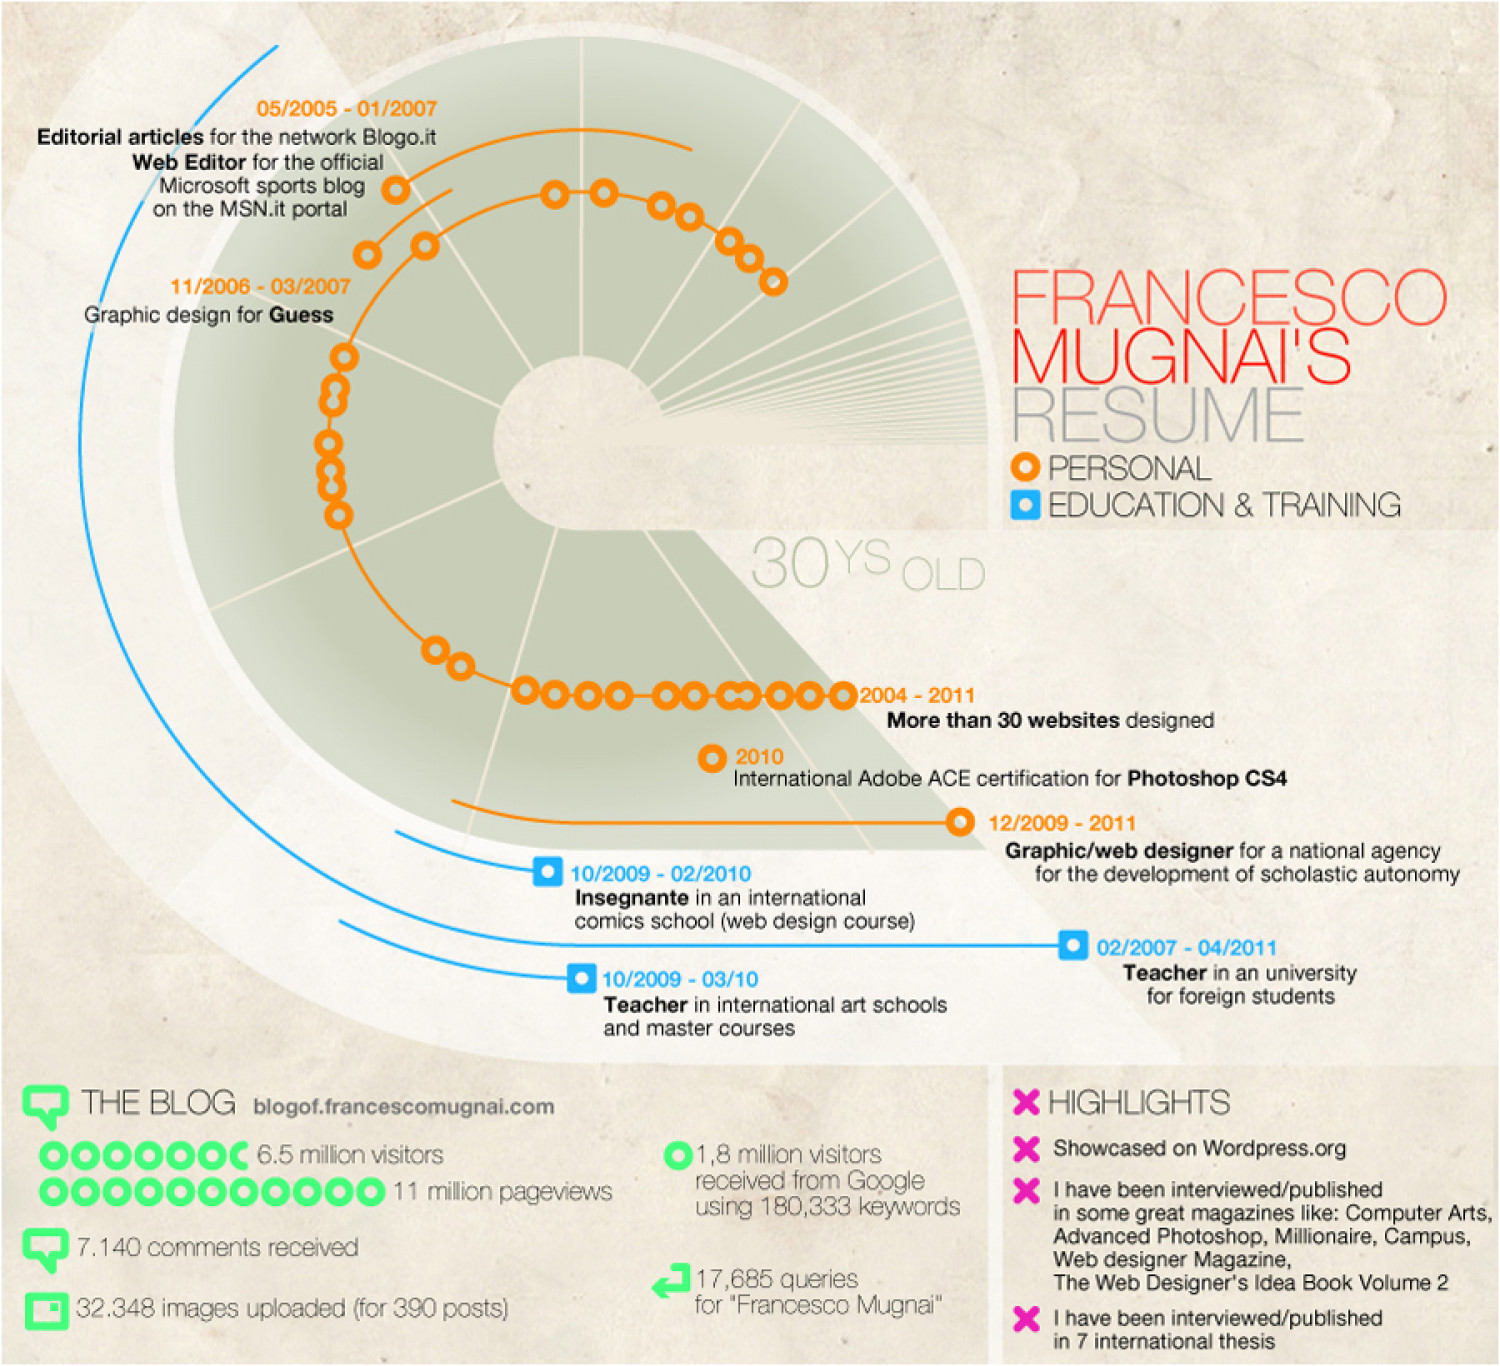 Francesco Mugnai's resume Infographic